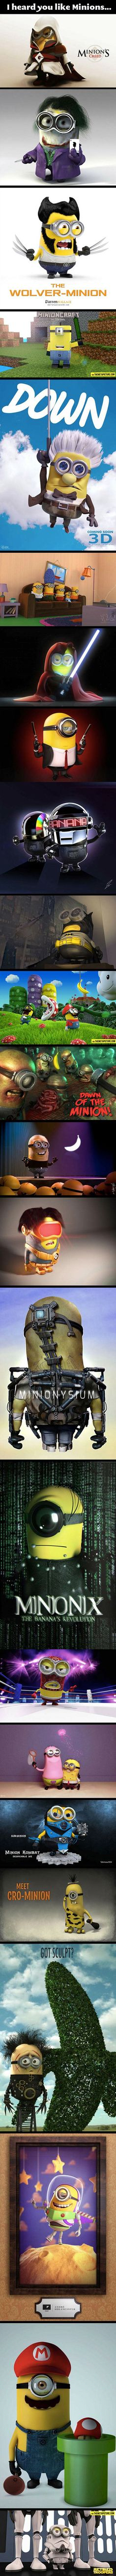 Here are some Minions as pop culture icons.